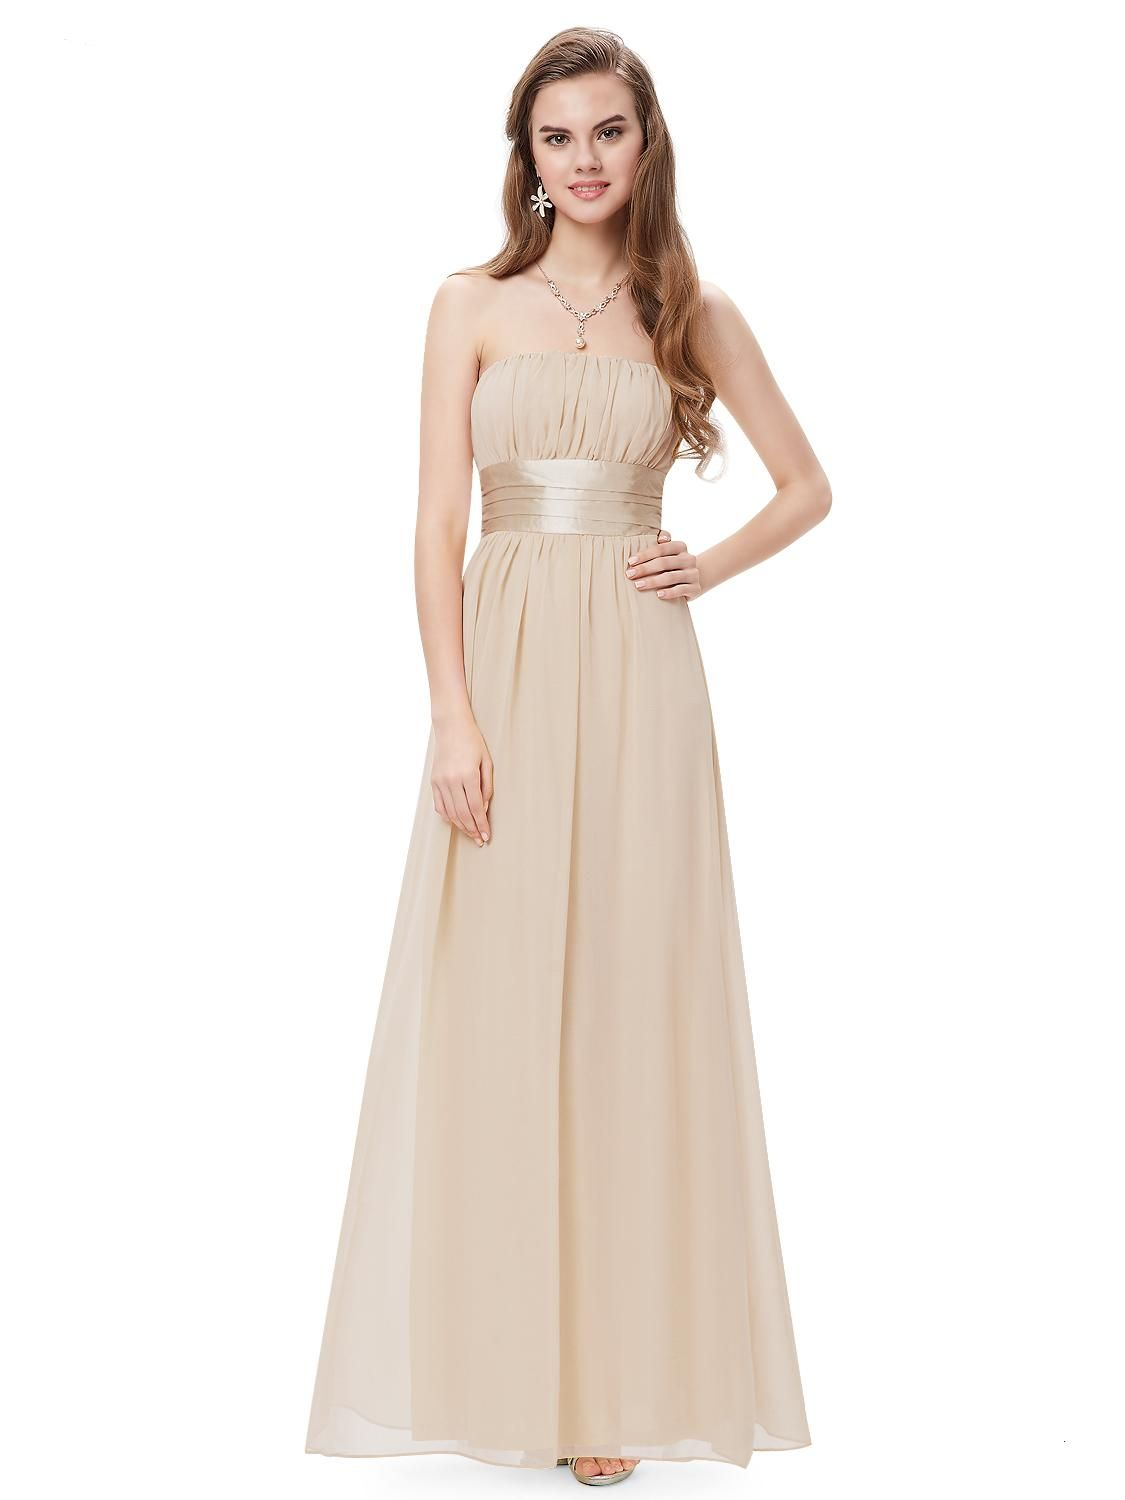 Toasted almond long evening party bridesmaid dress bridesmaid toasted almond long evening party bridesmaid dress dresses for juniors1920s weddingwedding ombrellifo Gallery